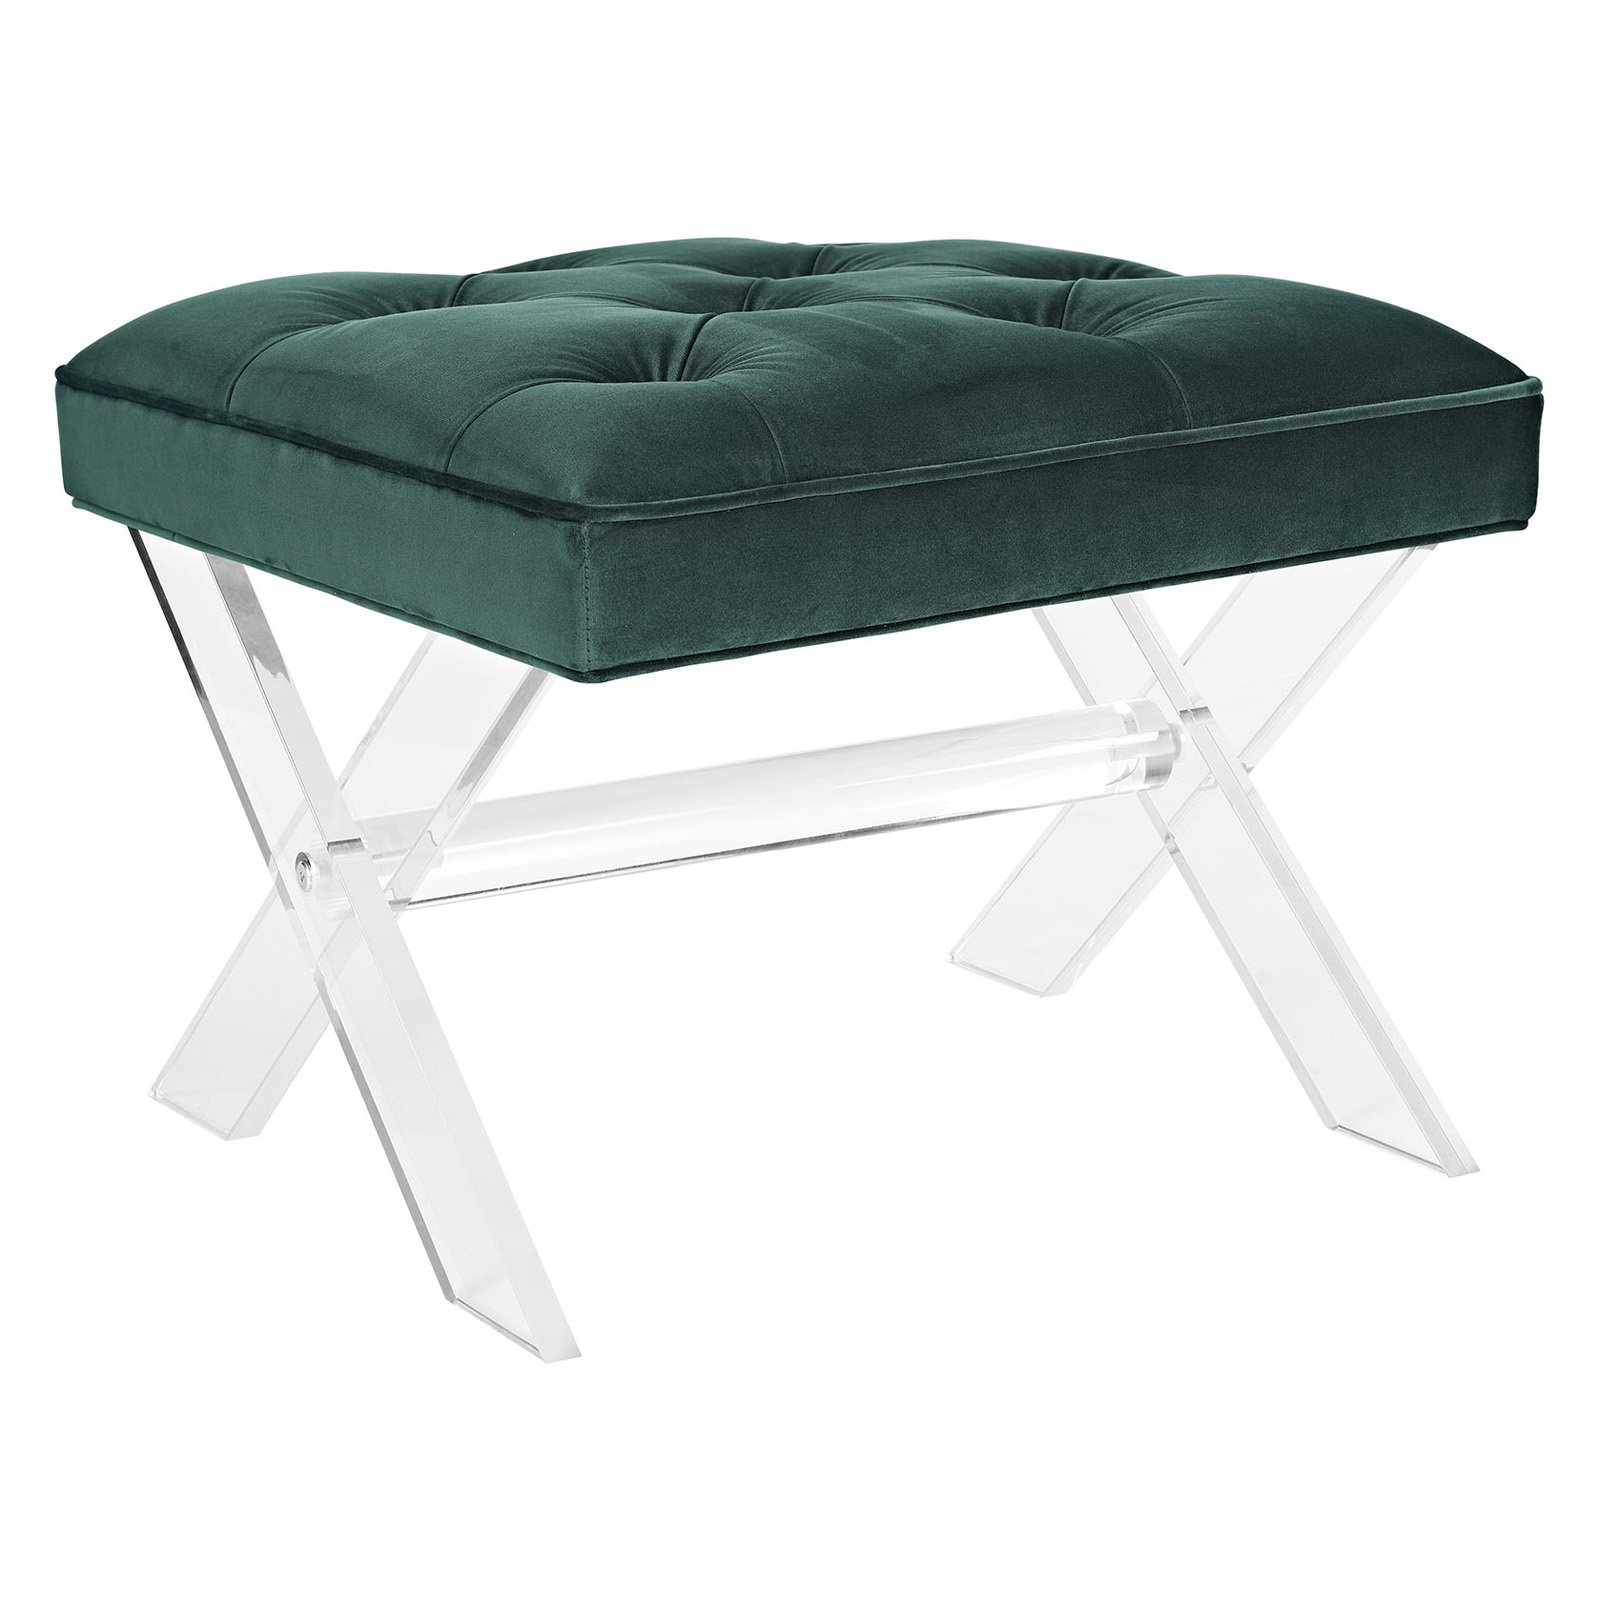 Modway Swift Upholstered Bench or Ottoman, Multiple Colors